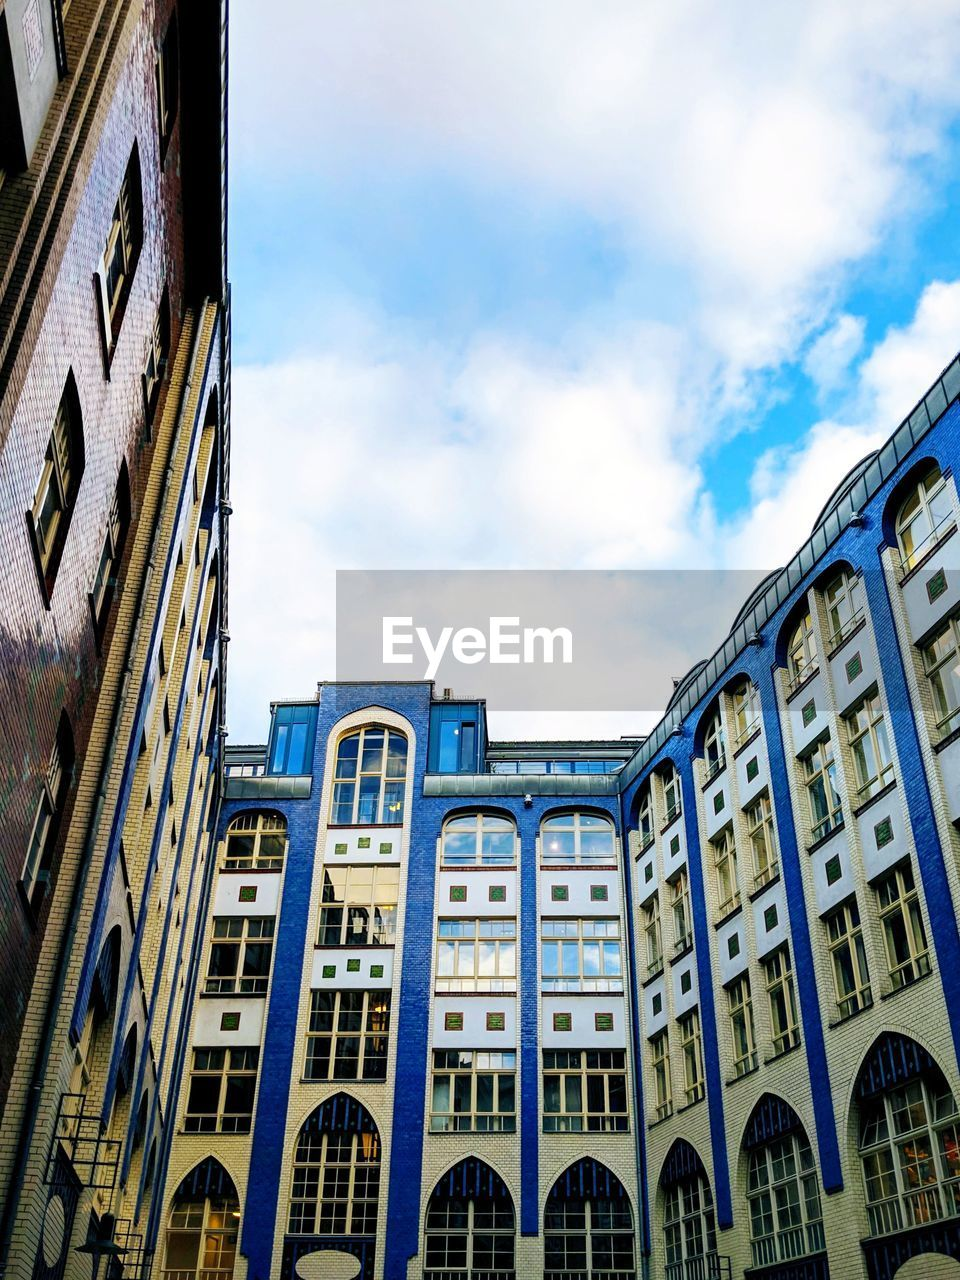 built structure, building exterior, architecture, sky, cloud - sky, building, low angle view, no people, city, window, day, nature, arch, outdoors, residential district, glass - material, sunlight, blue, in a row, office building exterior